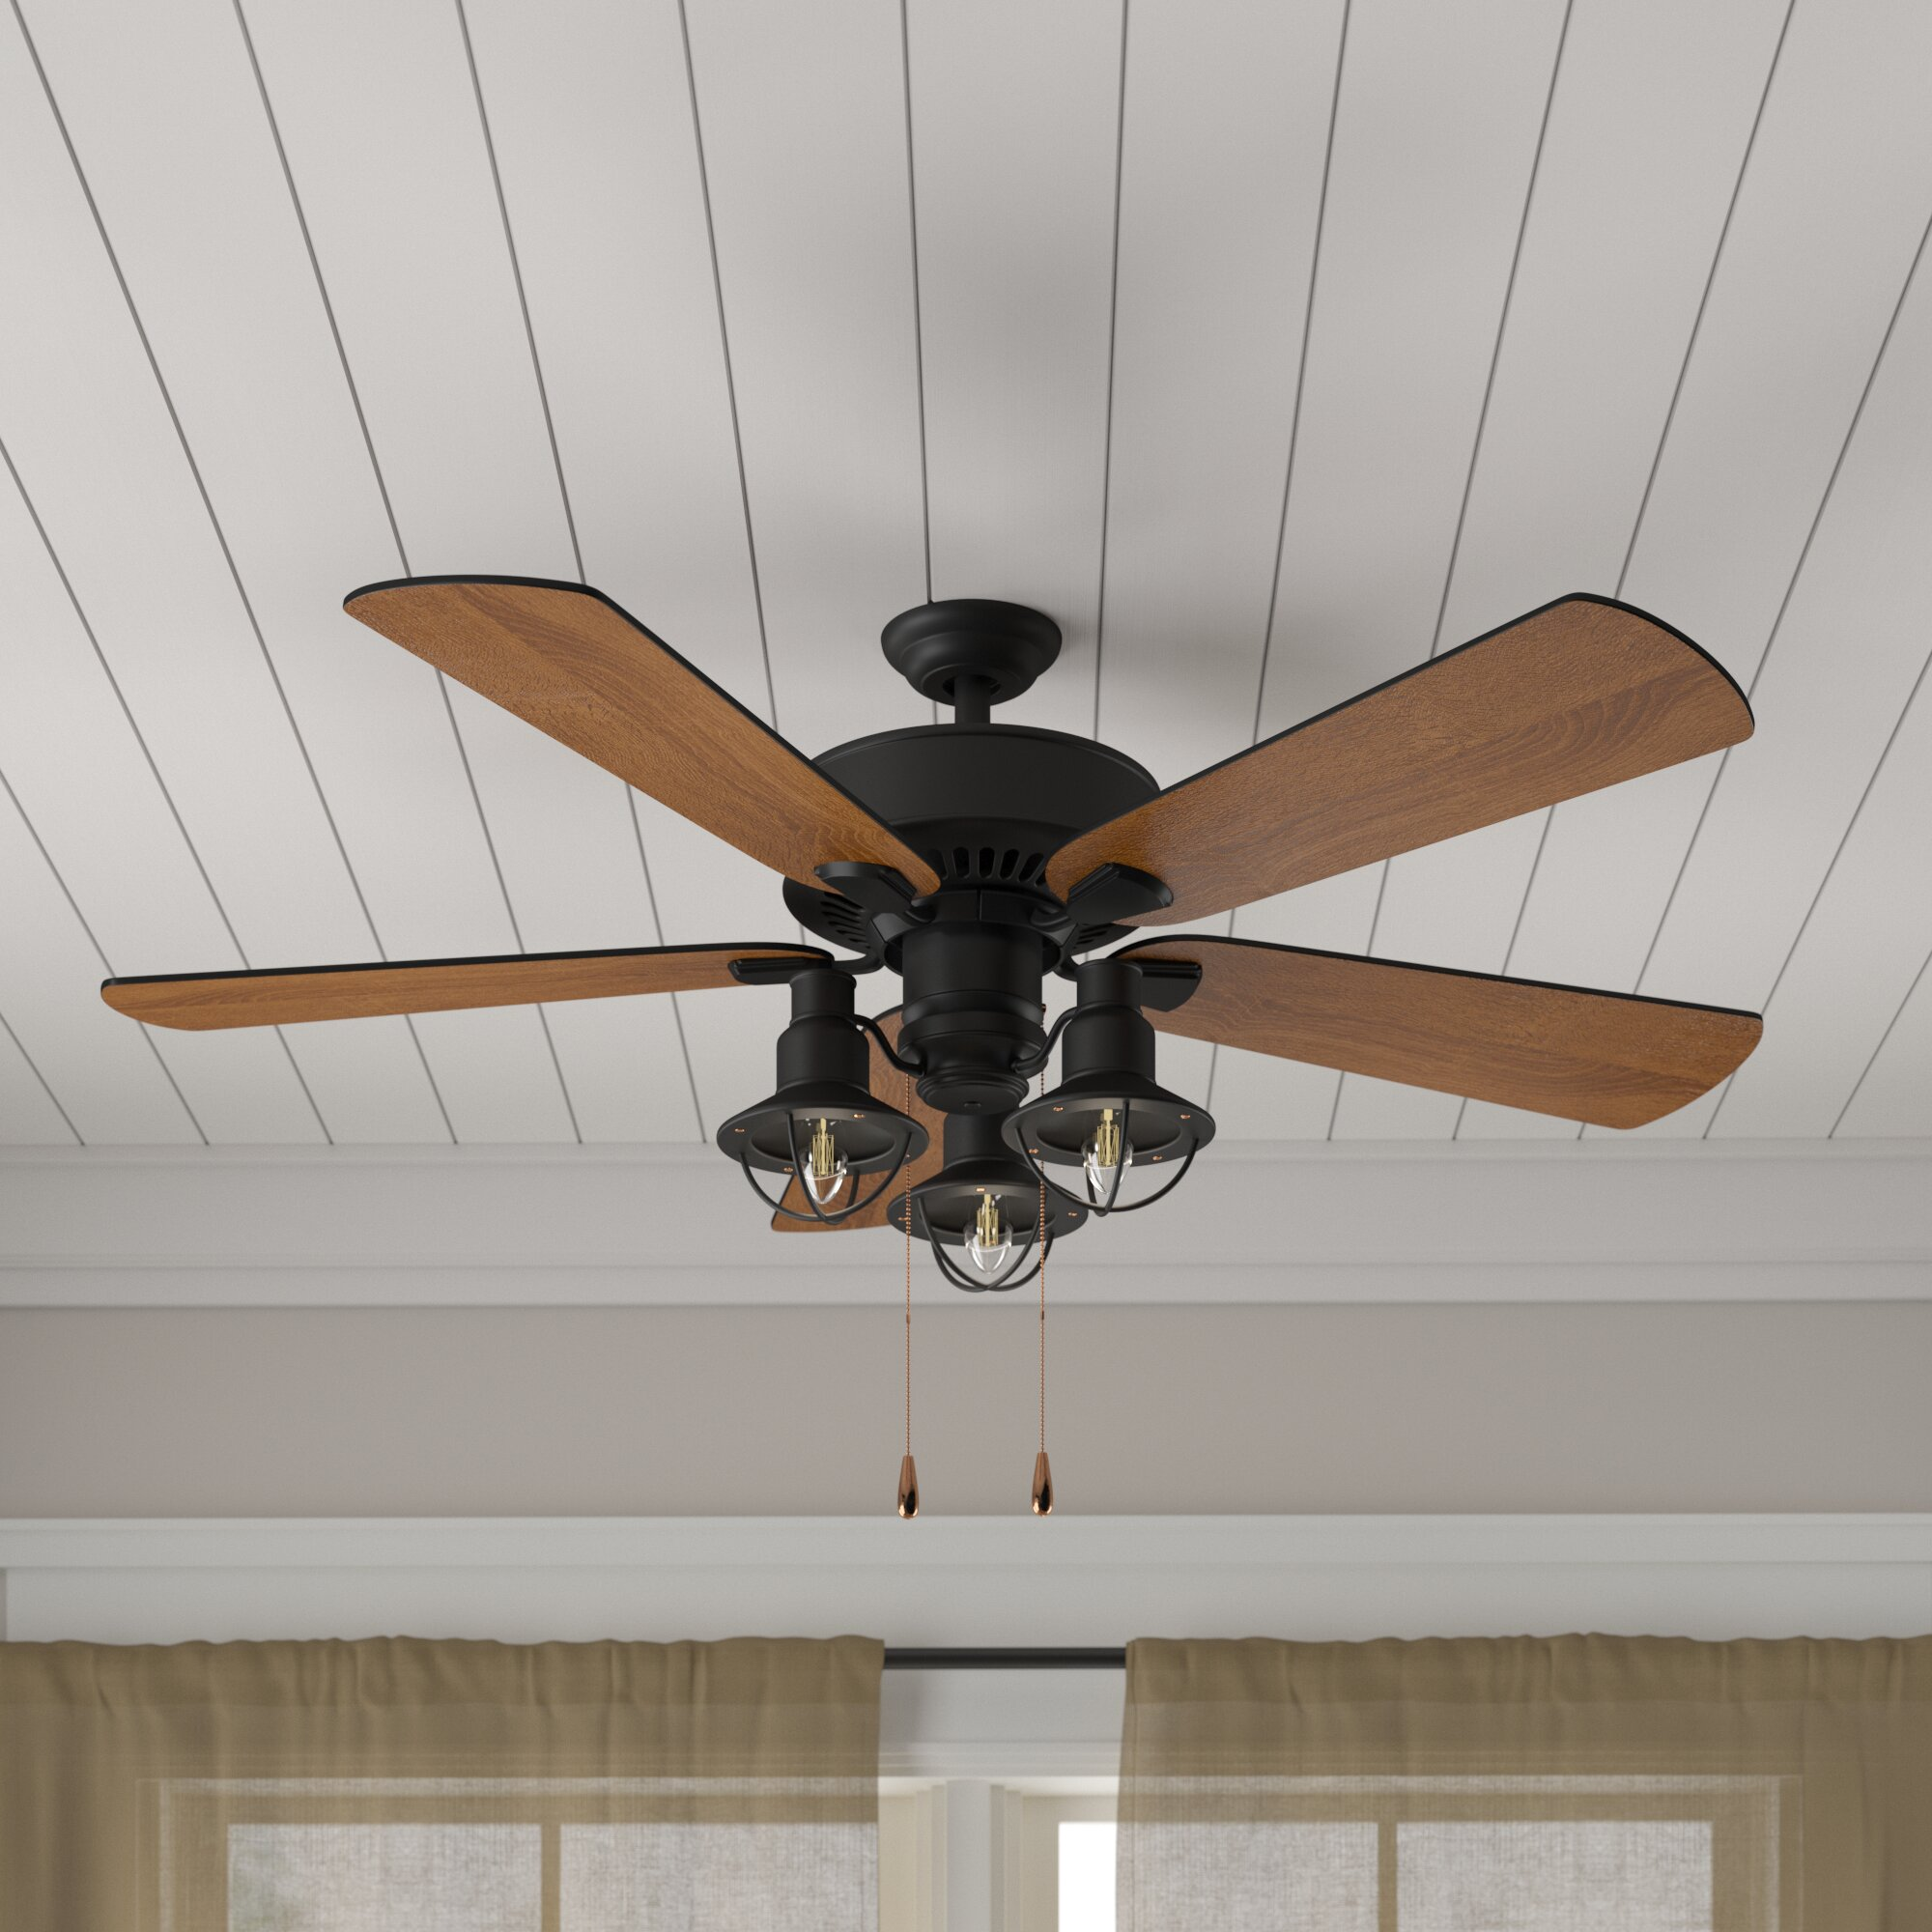 Ceiling Fans Youll Love Way Fan Always Hot Light Switched Wiring Done Right 52 Ravello 5 Blade Led Kit Included